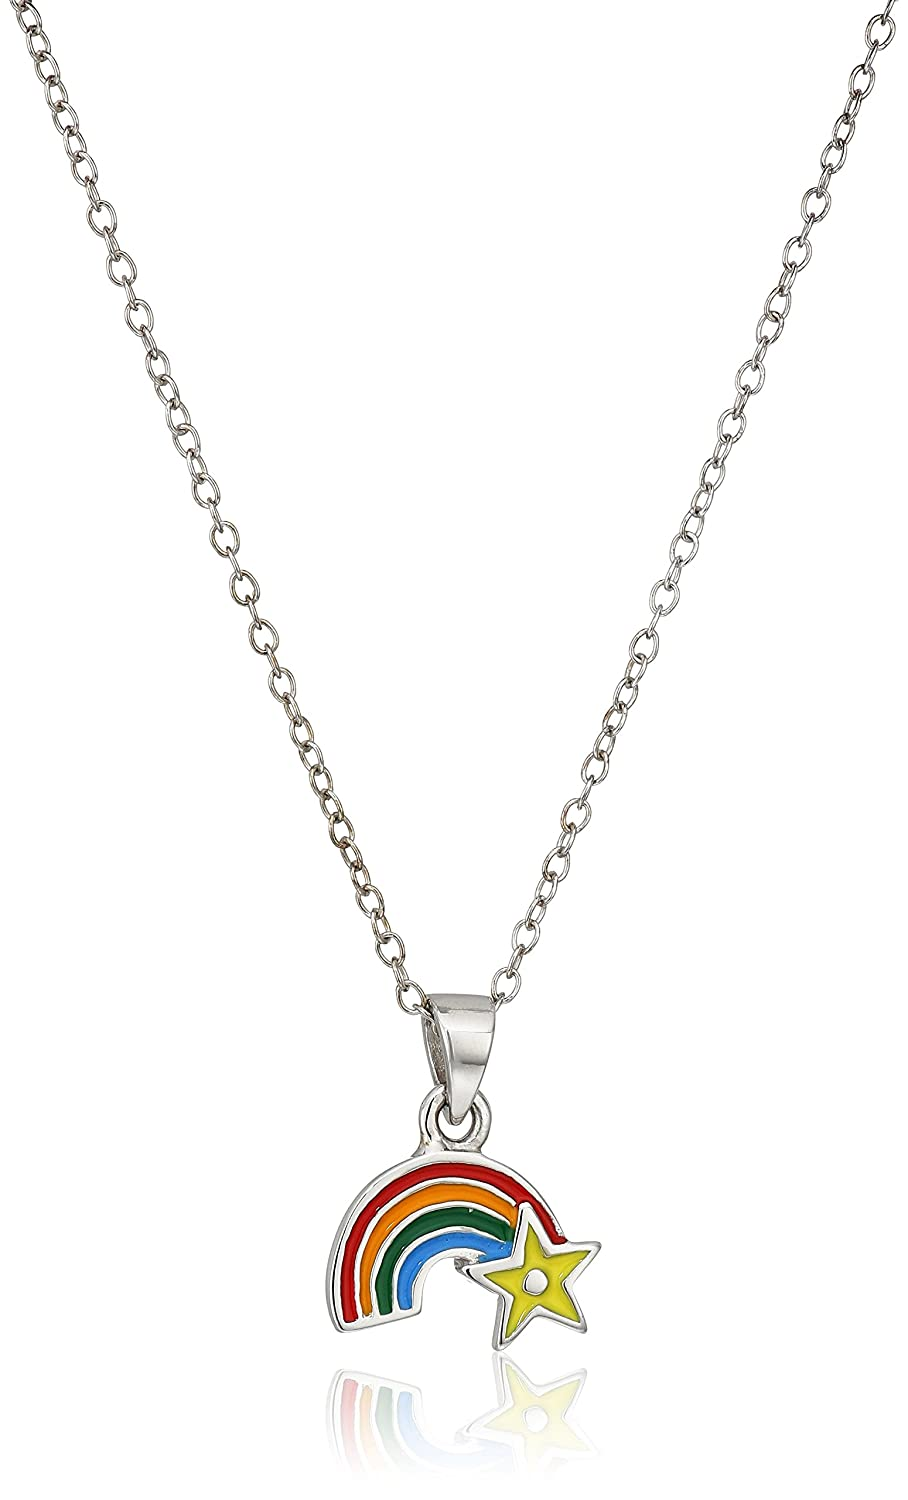 Amazon.com: Hallmark – Tarjeta de Jewelry collar con ...